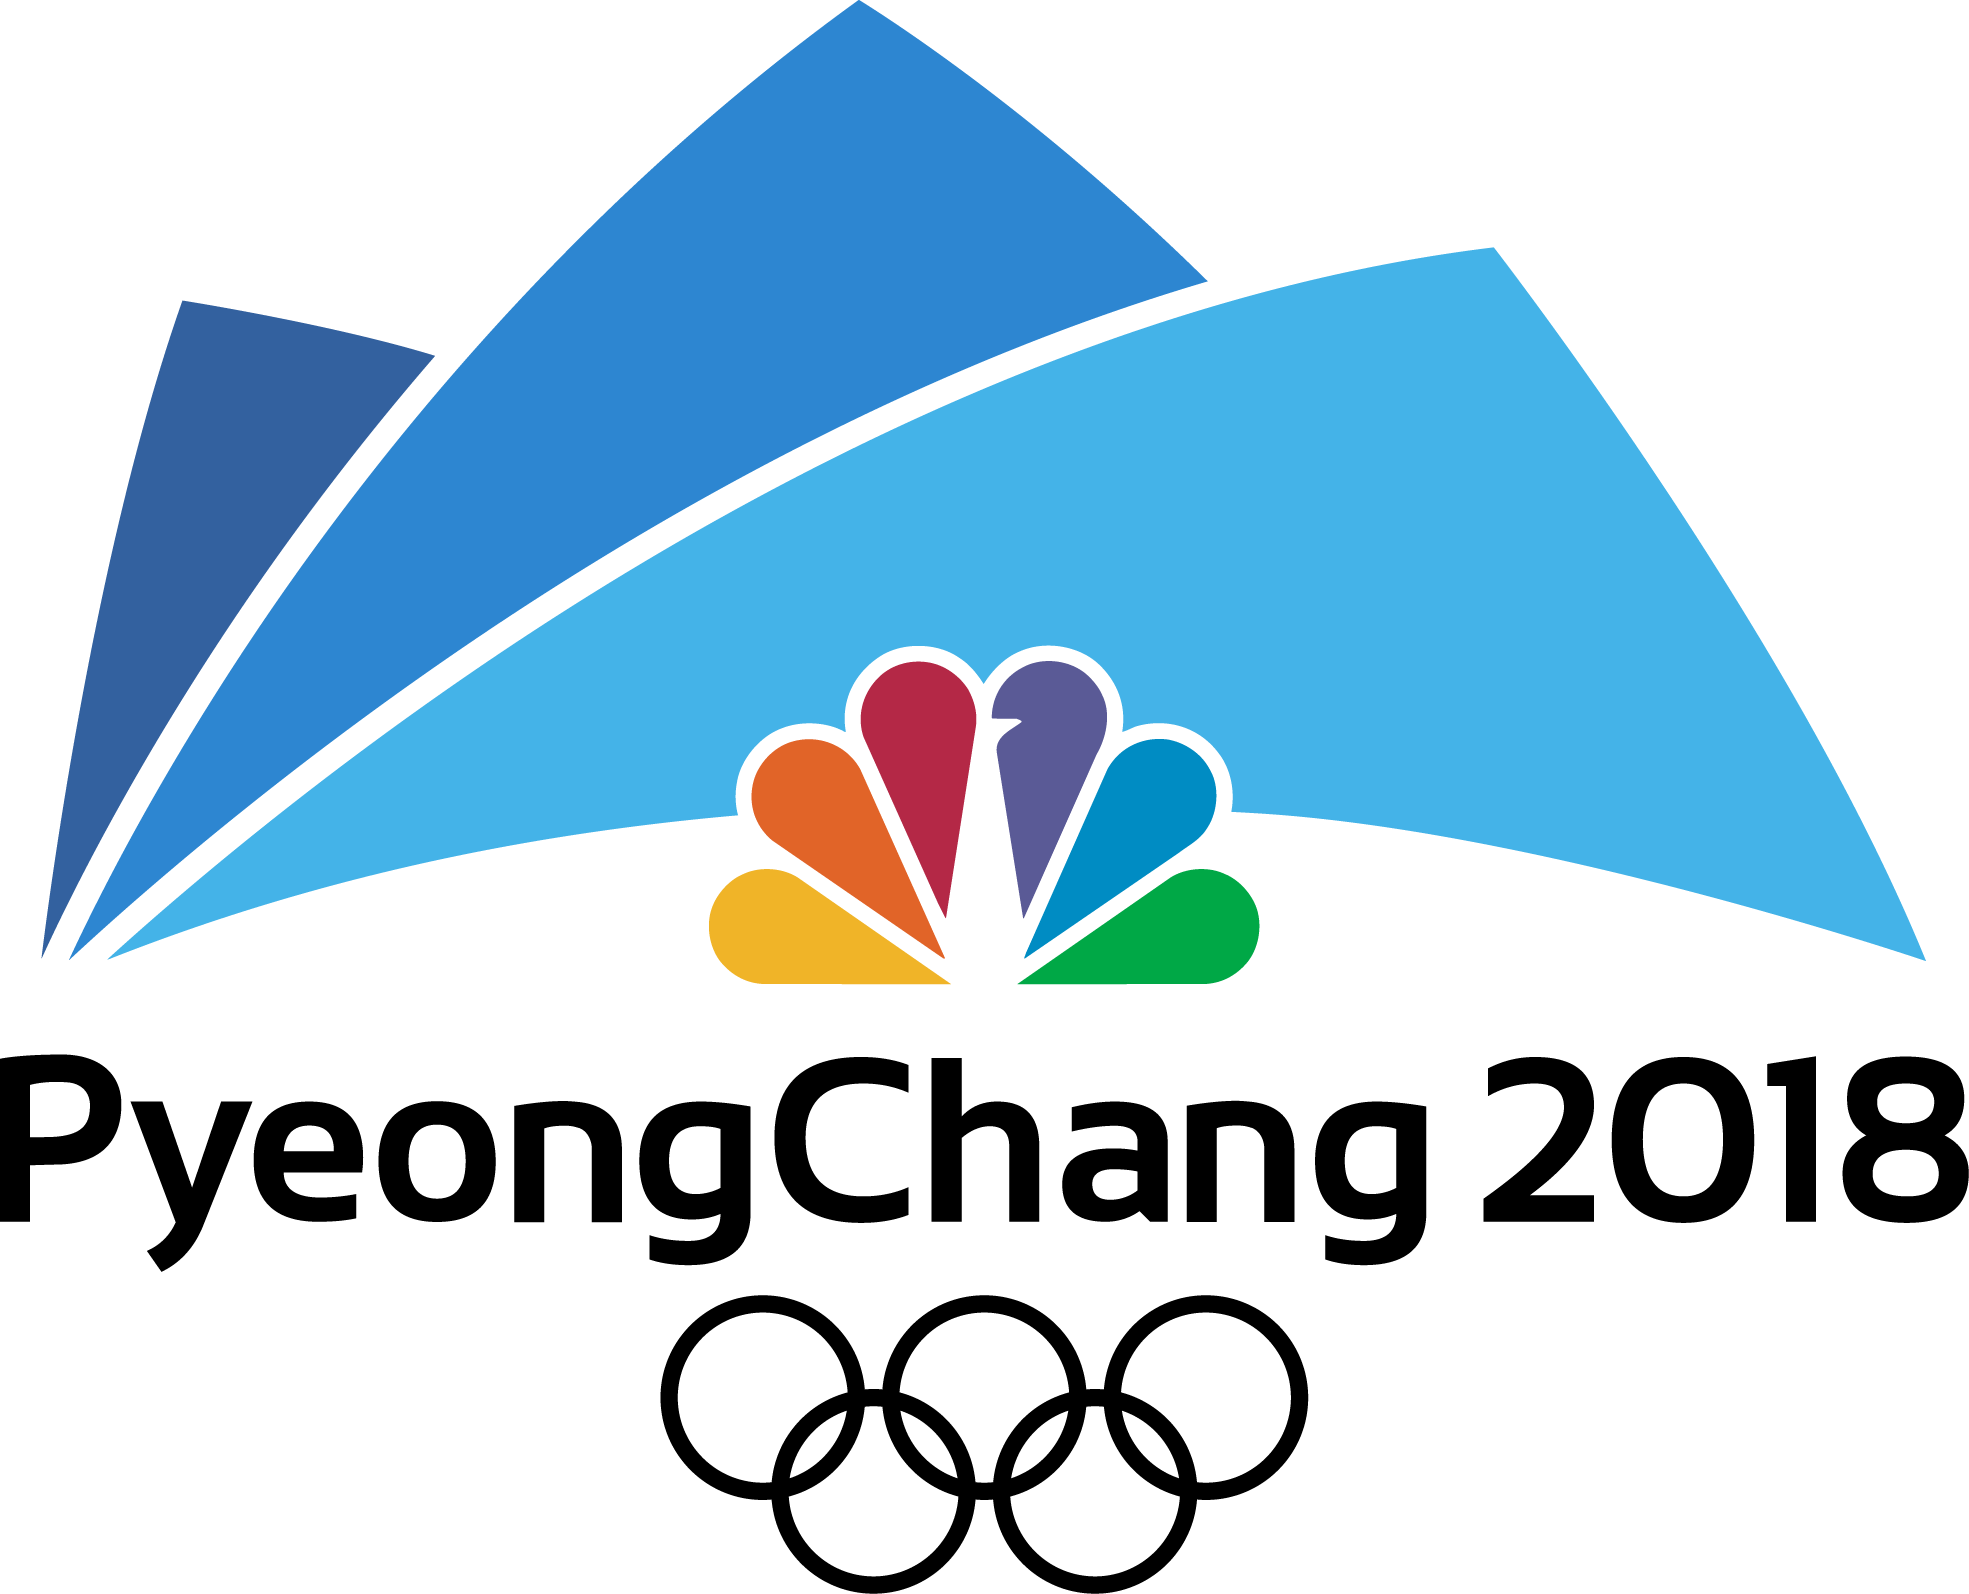 043b84958 NBC Parts Ways With One of Its Olympics Analysts After Embarrassing Incident